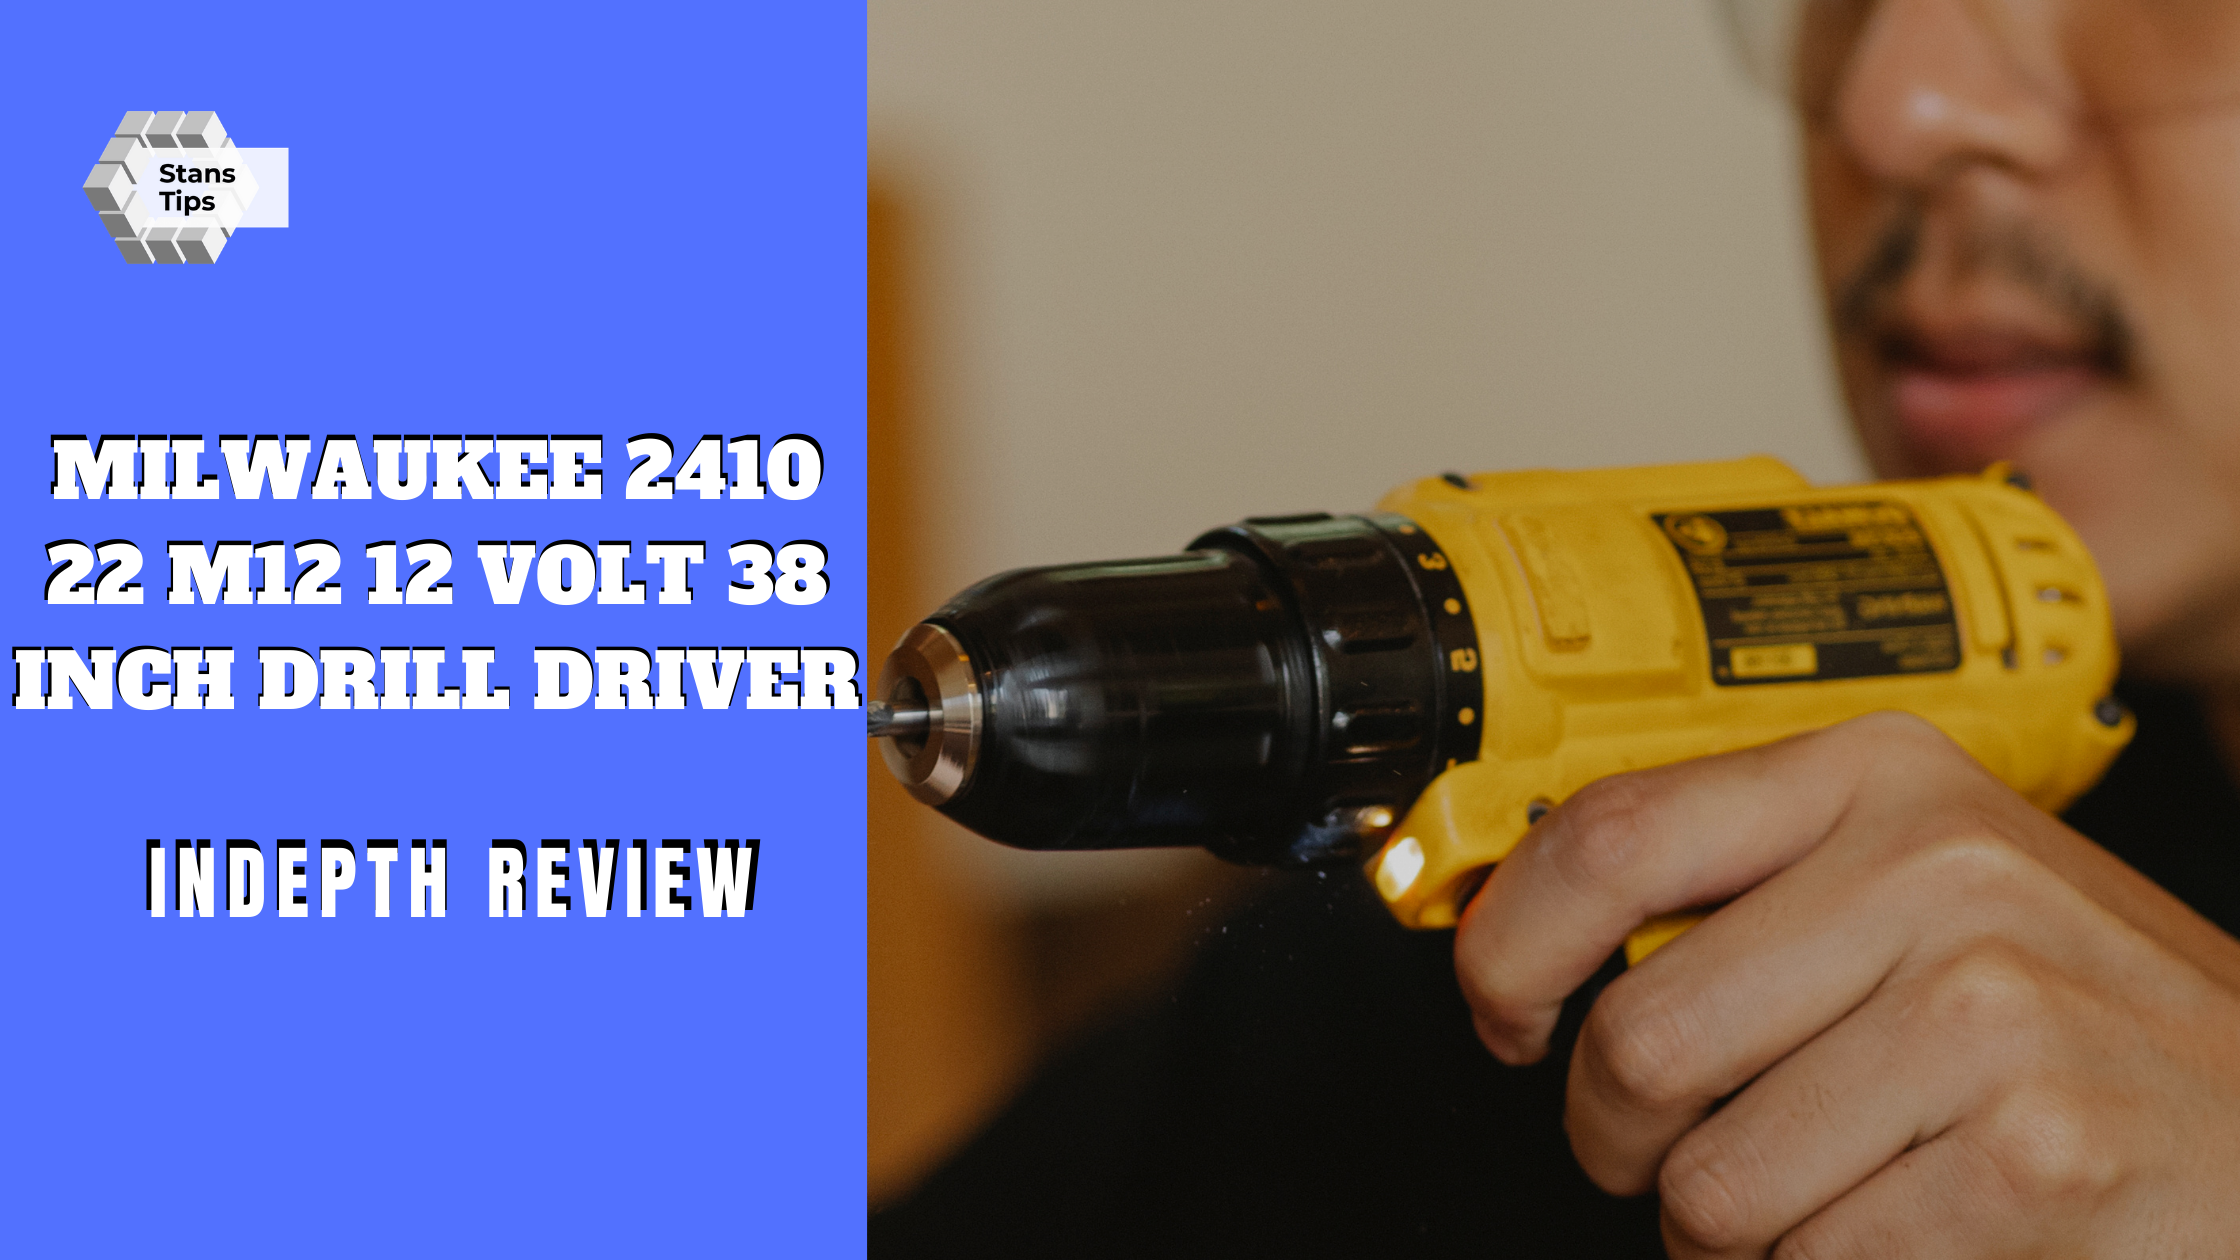 Milwaukee 2410 22 m12 12 volt 38 inch drill driver review